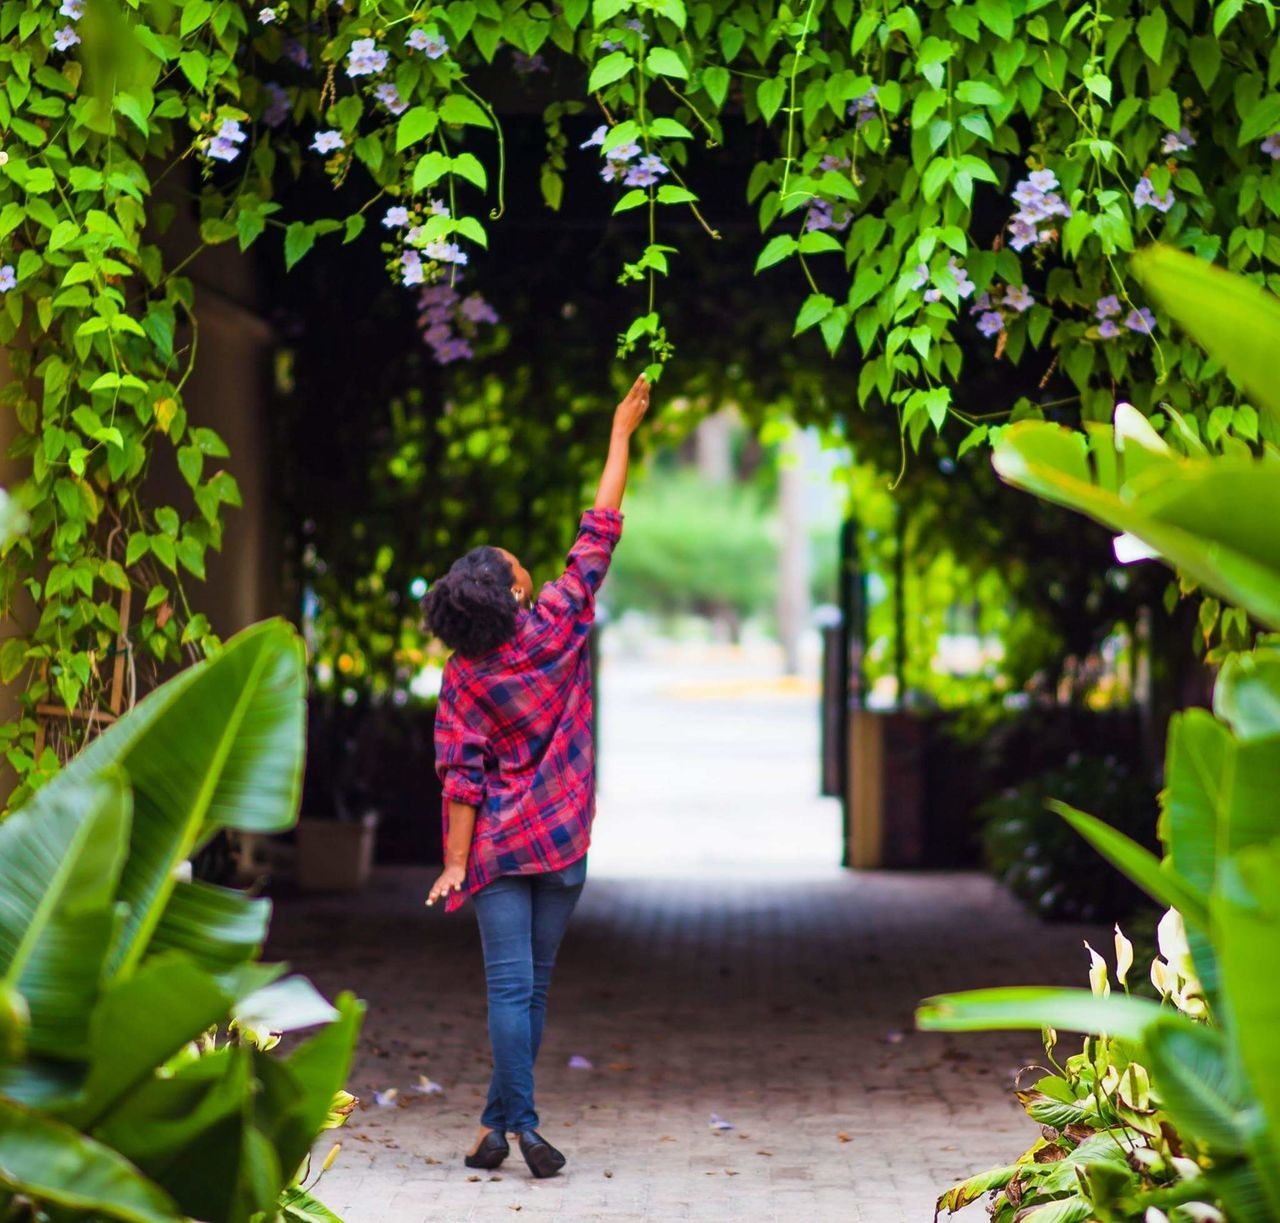 rear view, full length, real people, one person, arms raised, walking, casual clothing, plant, outdoors, day, leaf, tree, standing, lifestyles, women, nature, adult, people